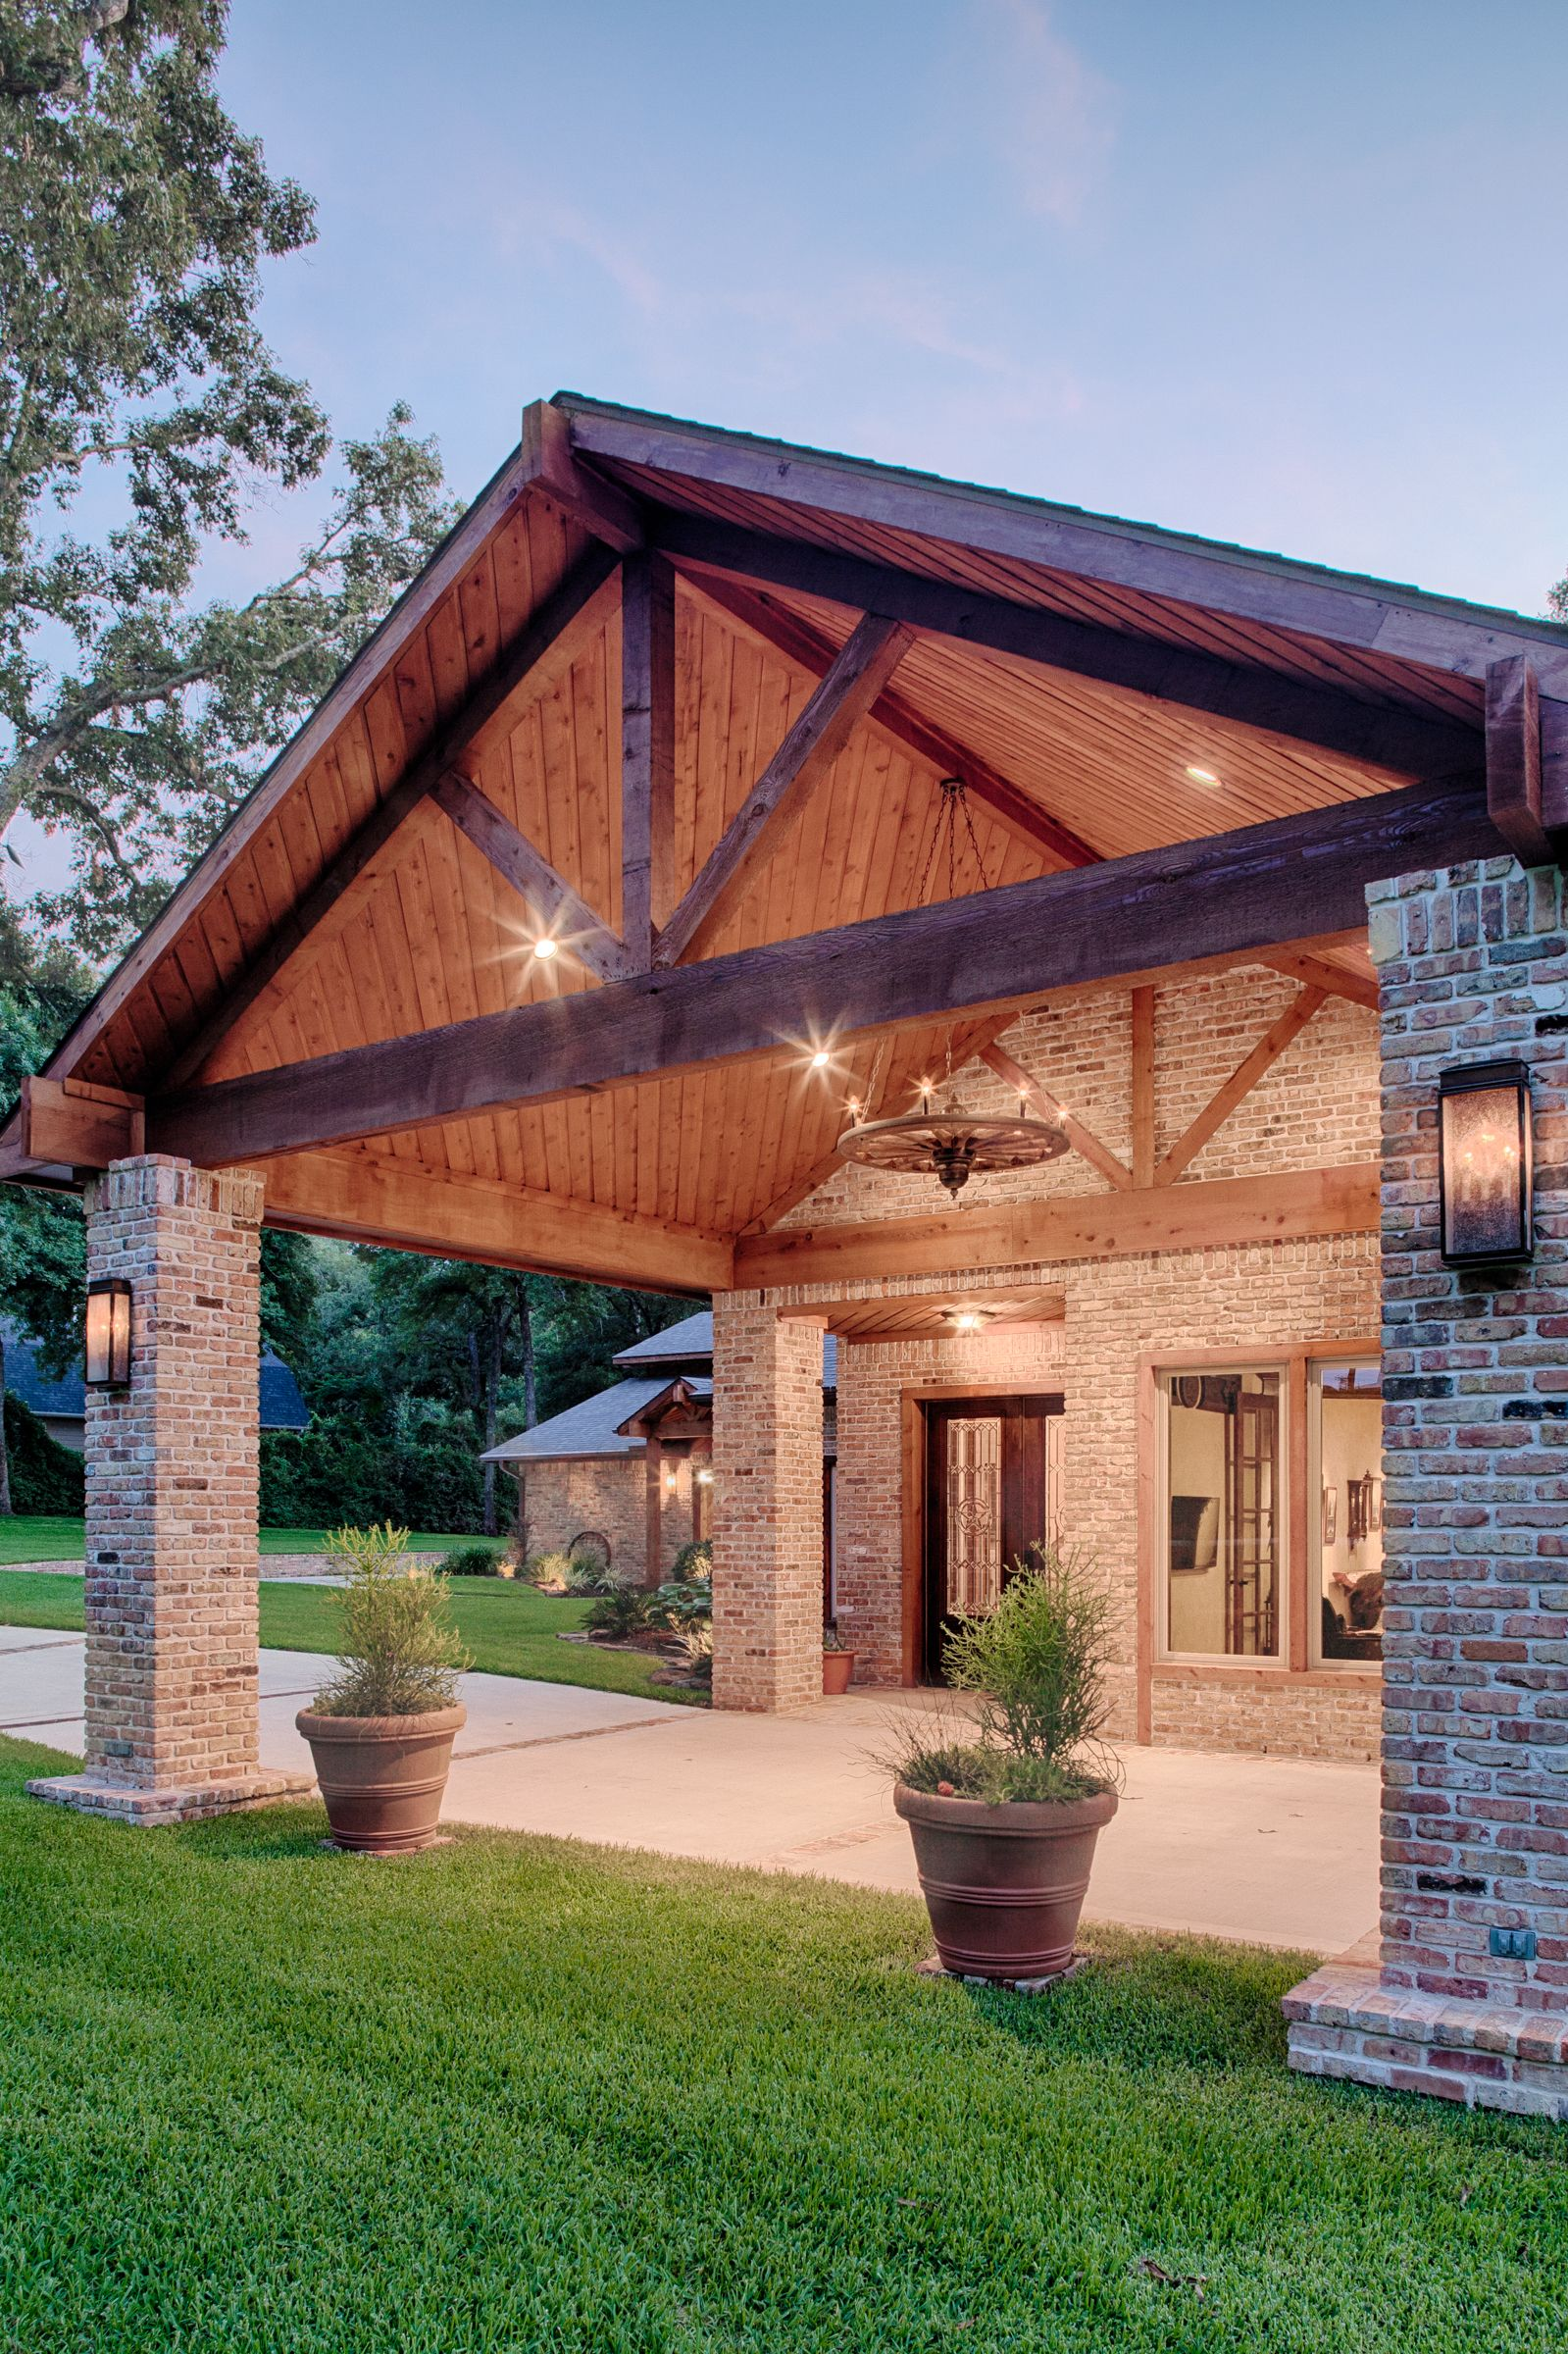 Covered Driveway House With Porch Lighting